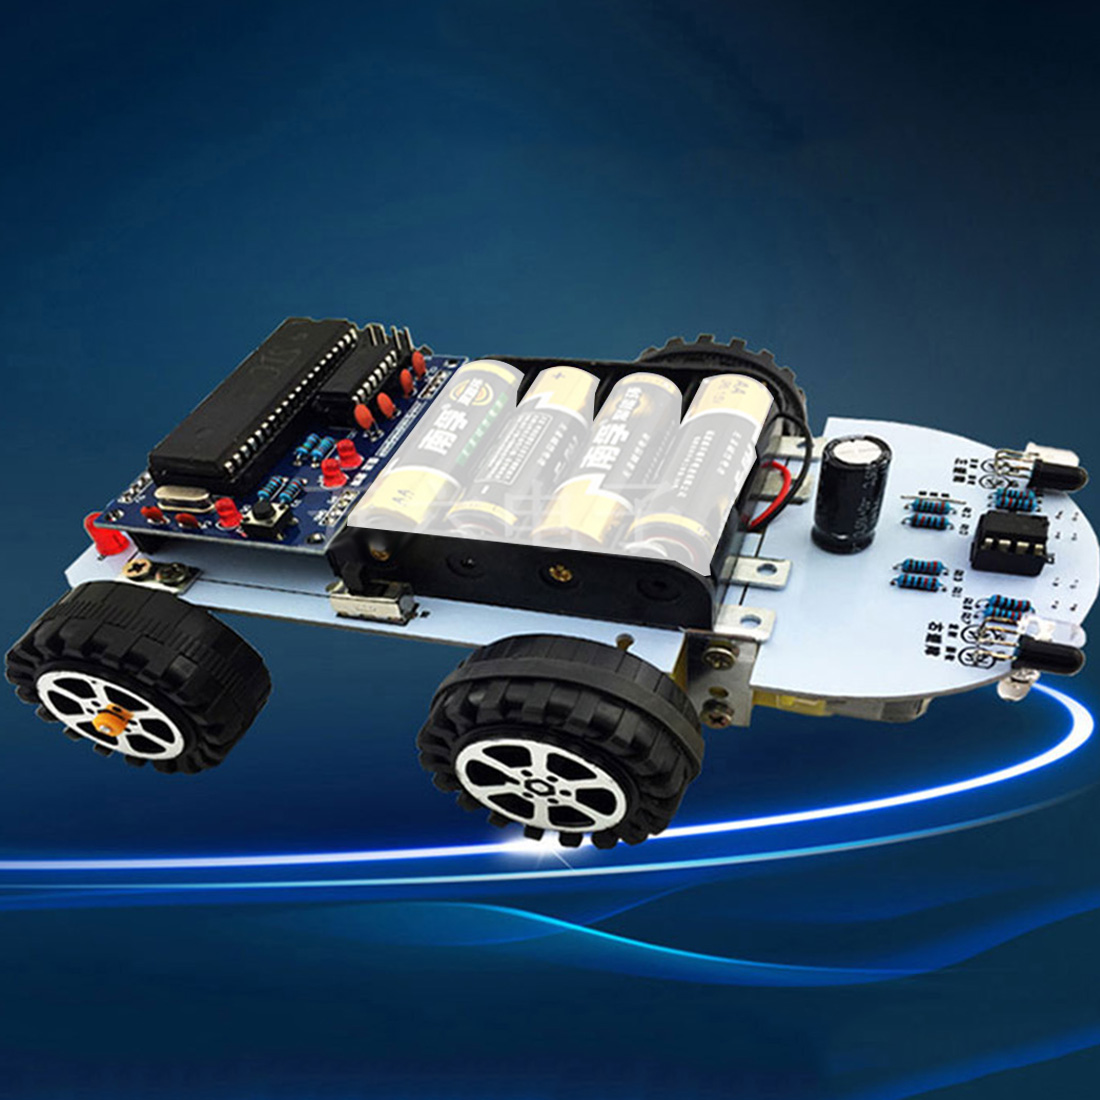 Feichao C51 4WD Tracking Line <font><b>Car</b></font> Smart Robot <font><b>Car</b></font> Kits Intelligent Obstacle Avoidance Robot Kits Parts for DIY <font><b>Electronic</b></font> <font><b>Toy</b></font> image